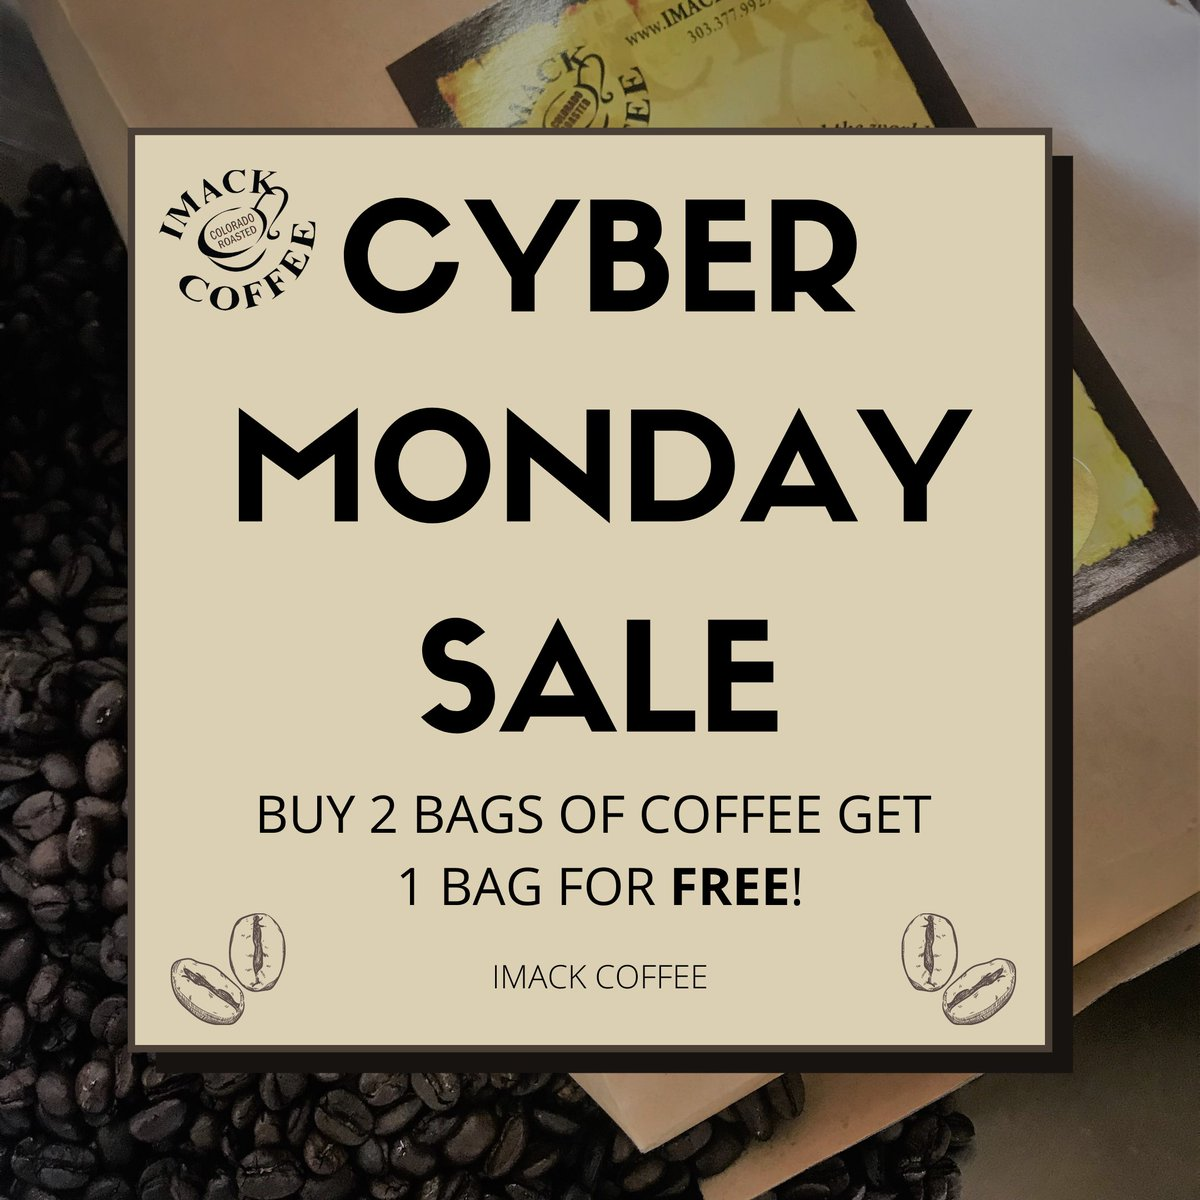 DON'T MISS OUT!!! Who doesn't love a free bag of coffee☕️😋  #coffee #coffeelover #coffeeshop #coffeetime #coffeeaddict #coffeeholic #denver #denvercolorado #denvercoffeescene #coloradocoffeeroaster #coloradocoffee #cybermonday #cybermonday2020 #cybermondaysale #sale #free